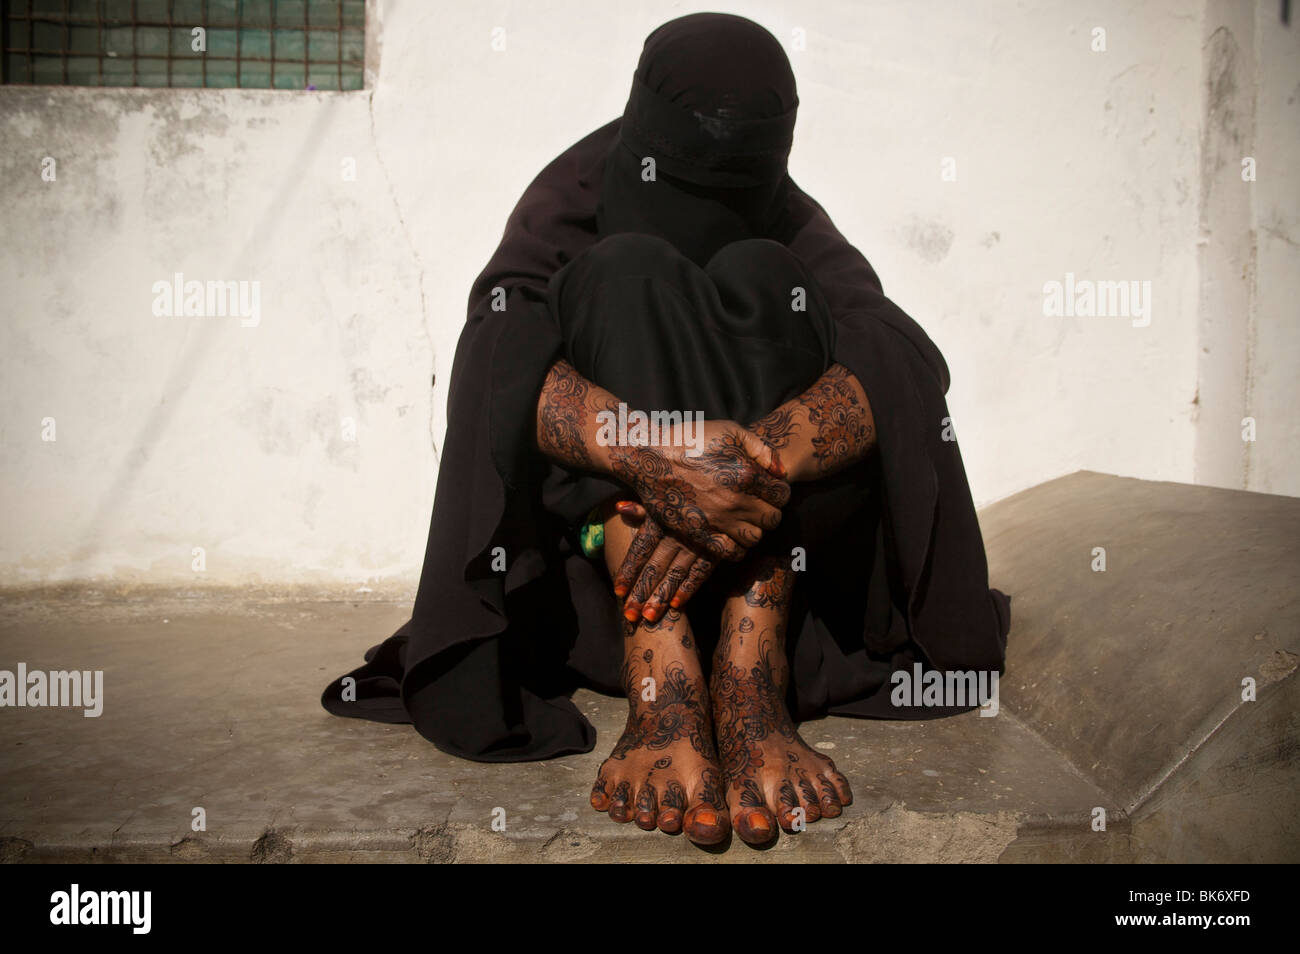 A woman wearing a burqa shows her henna body paint in the town of Lamu island on August 17, 2009, Kenya. - Stock Image